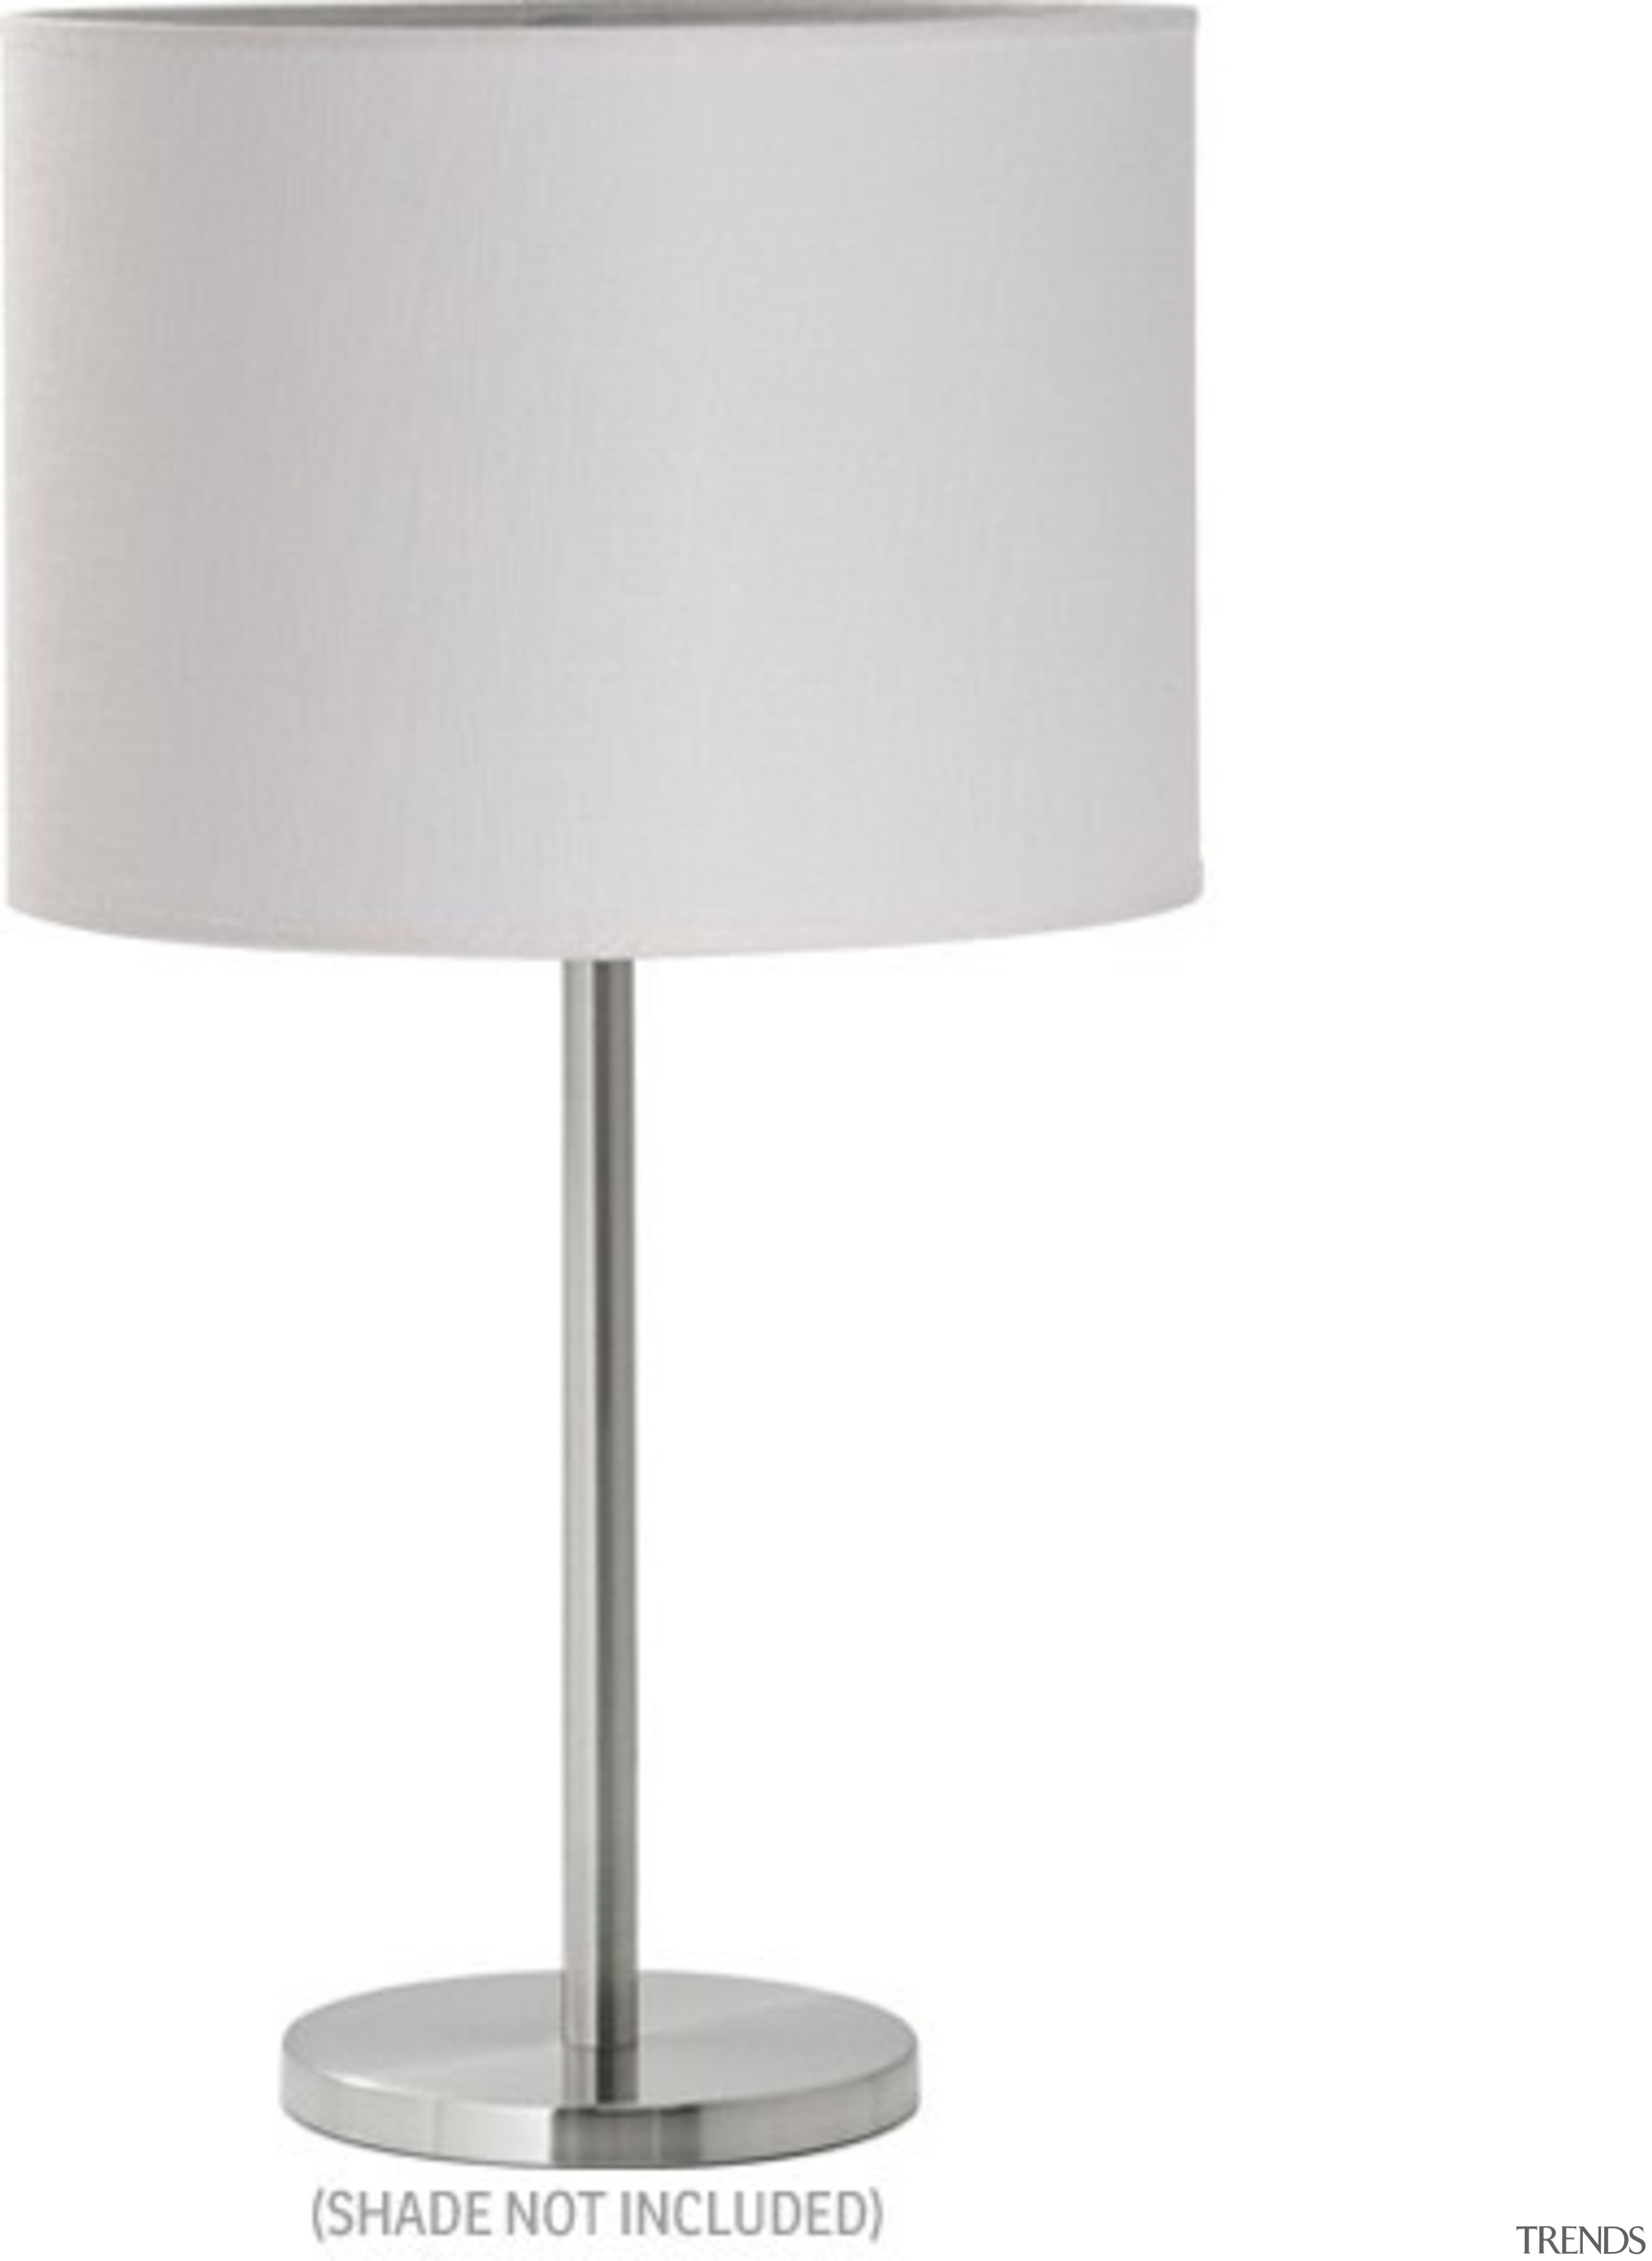 FeaturesAn understated table lamp design that can be lamp, light fixture, lighting, lighting accessory, product design, table, white